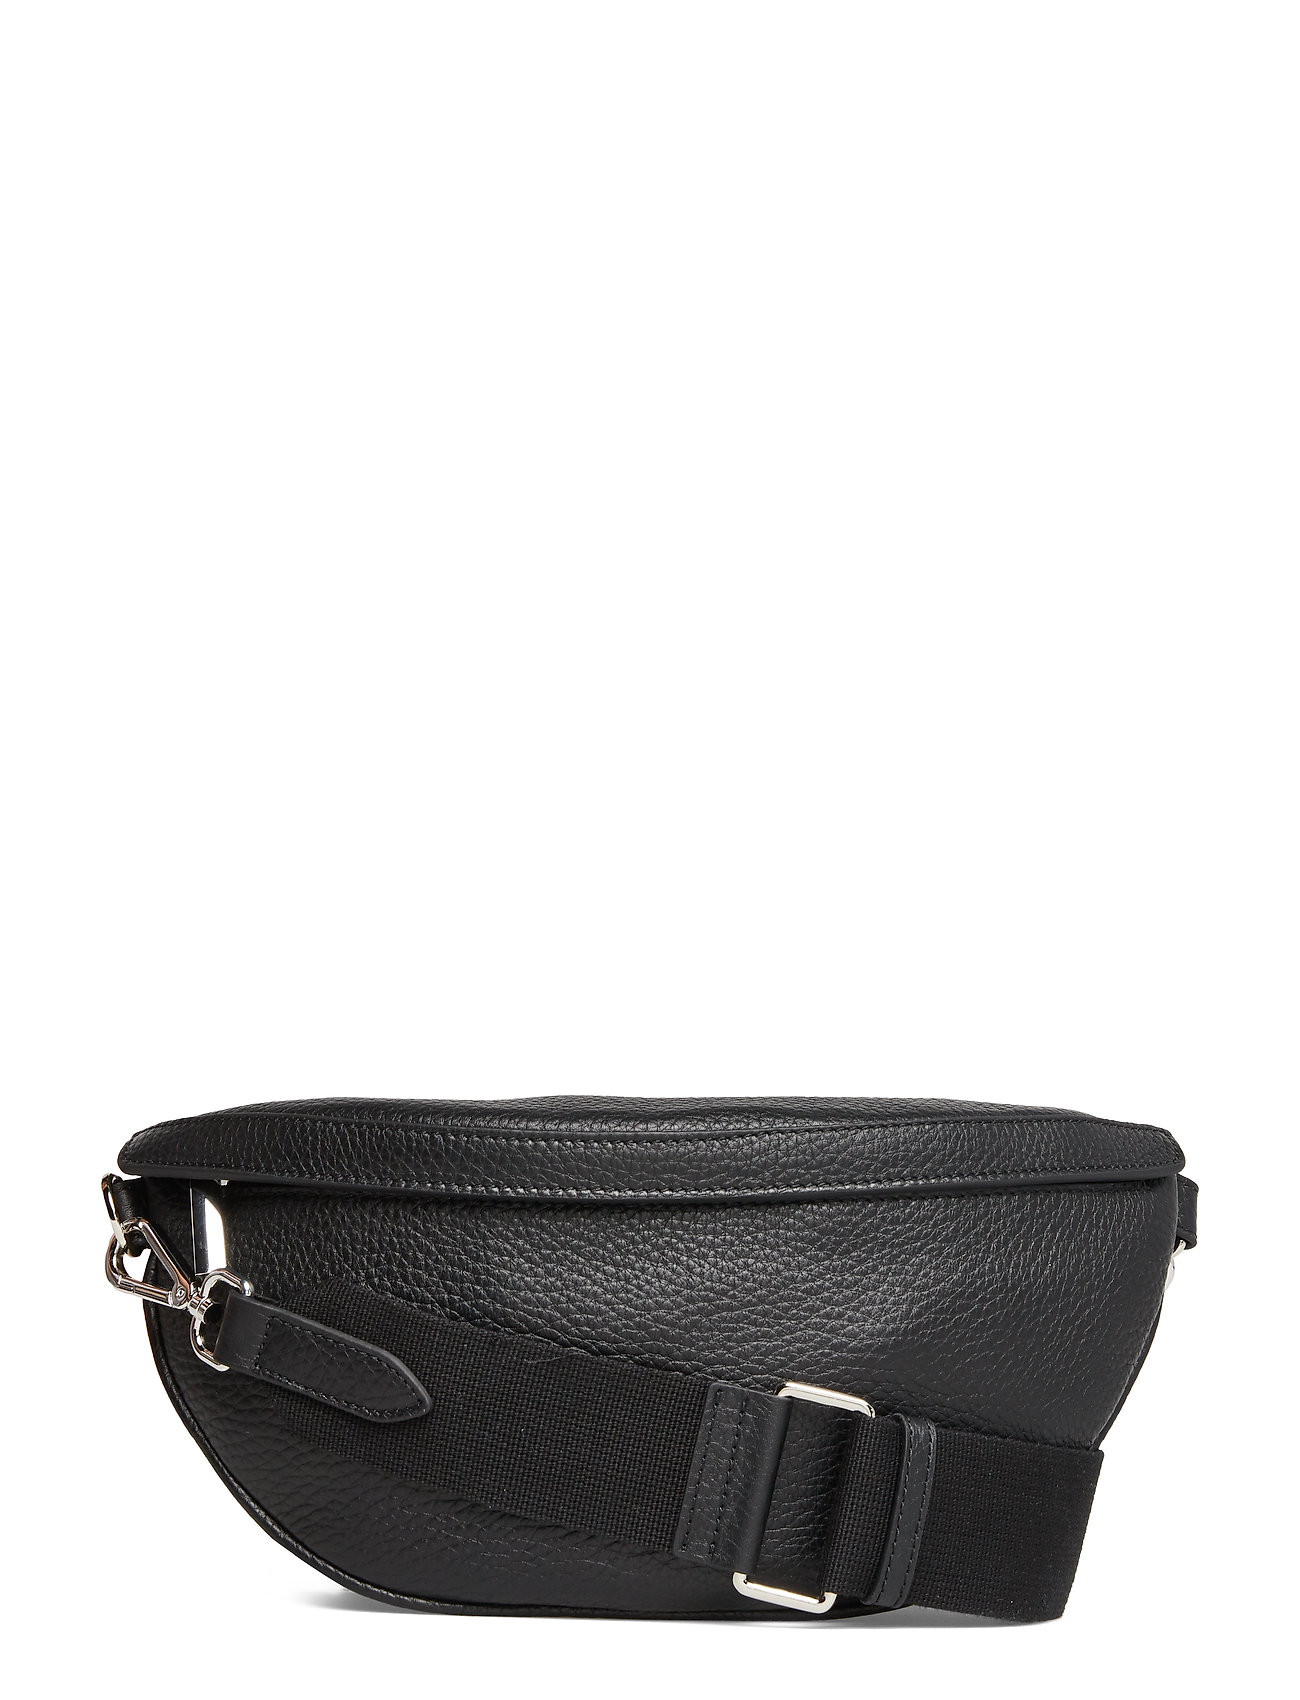 Nicole Nicole Small Small Bum BagblackDecadent rxdoBQCWEe